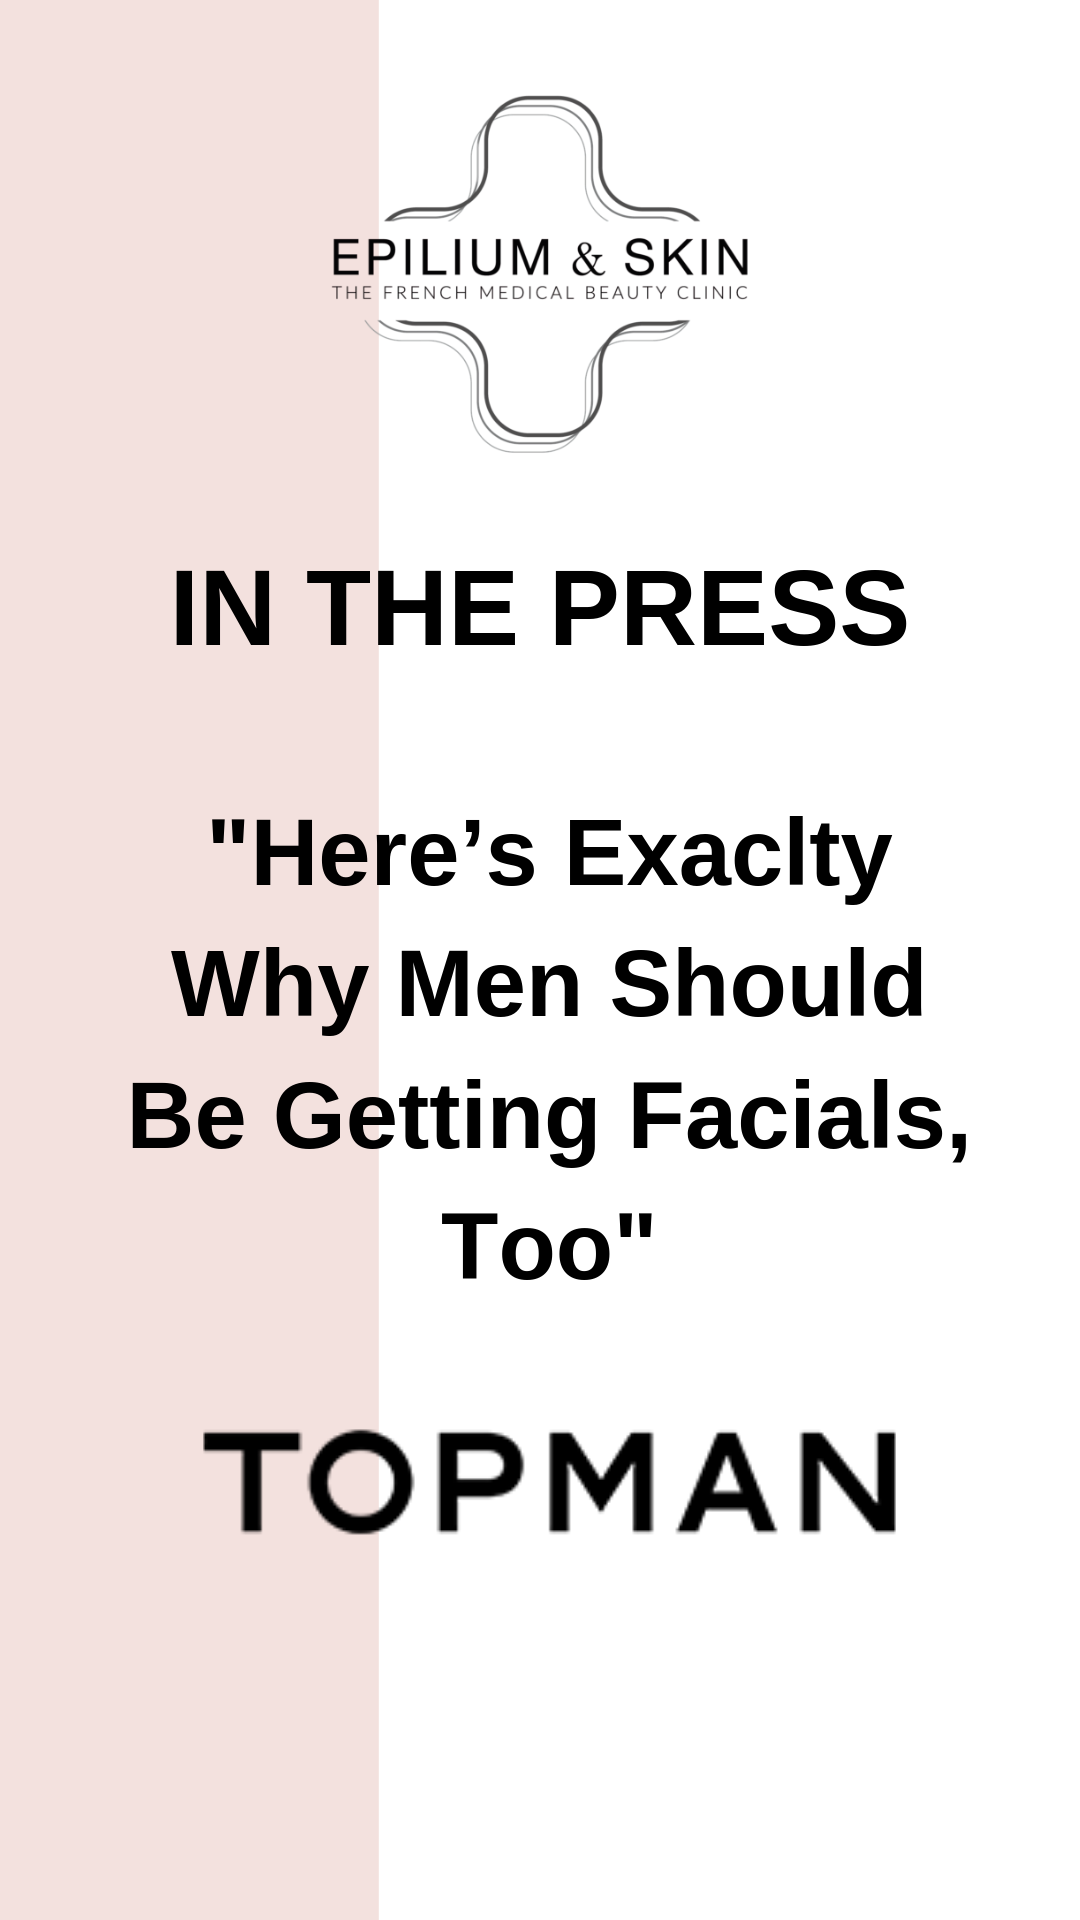 TOPMAN June 2019